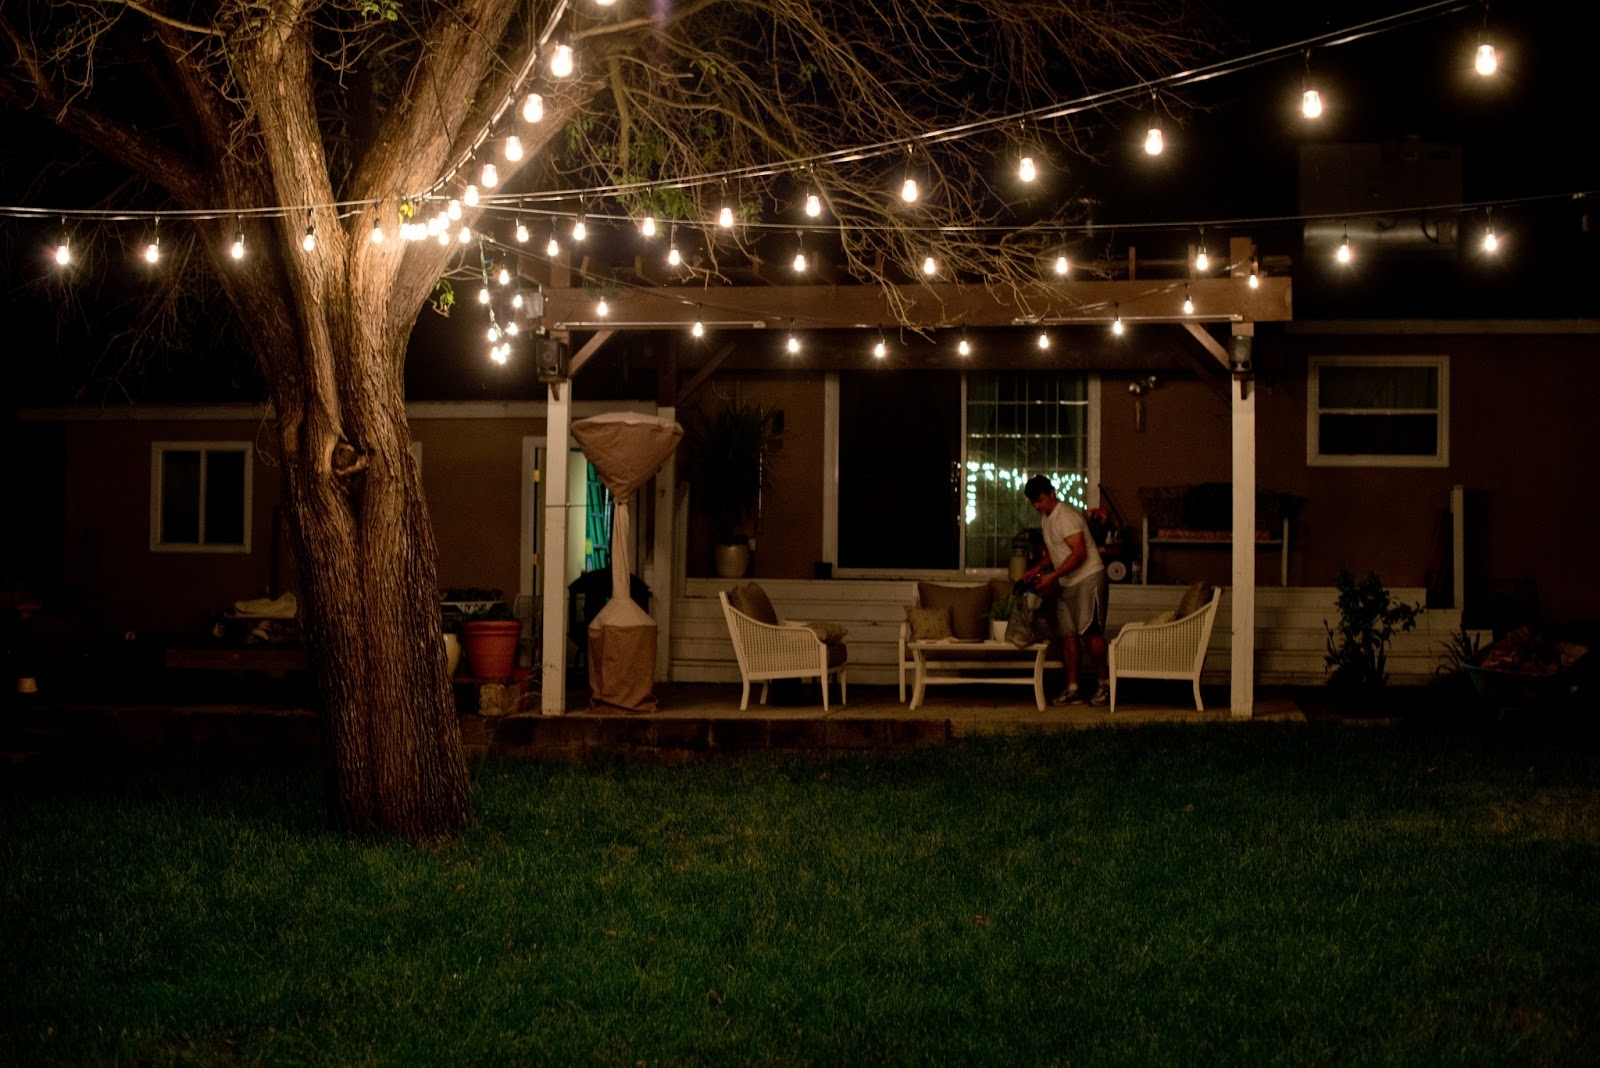 Well Known Outdoor Hanging Deck Lights In Backyardring Lights Led Outdoor Globe Lowes Outside Ideas Hanging (View 15 of 20)